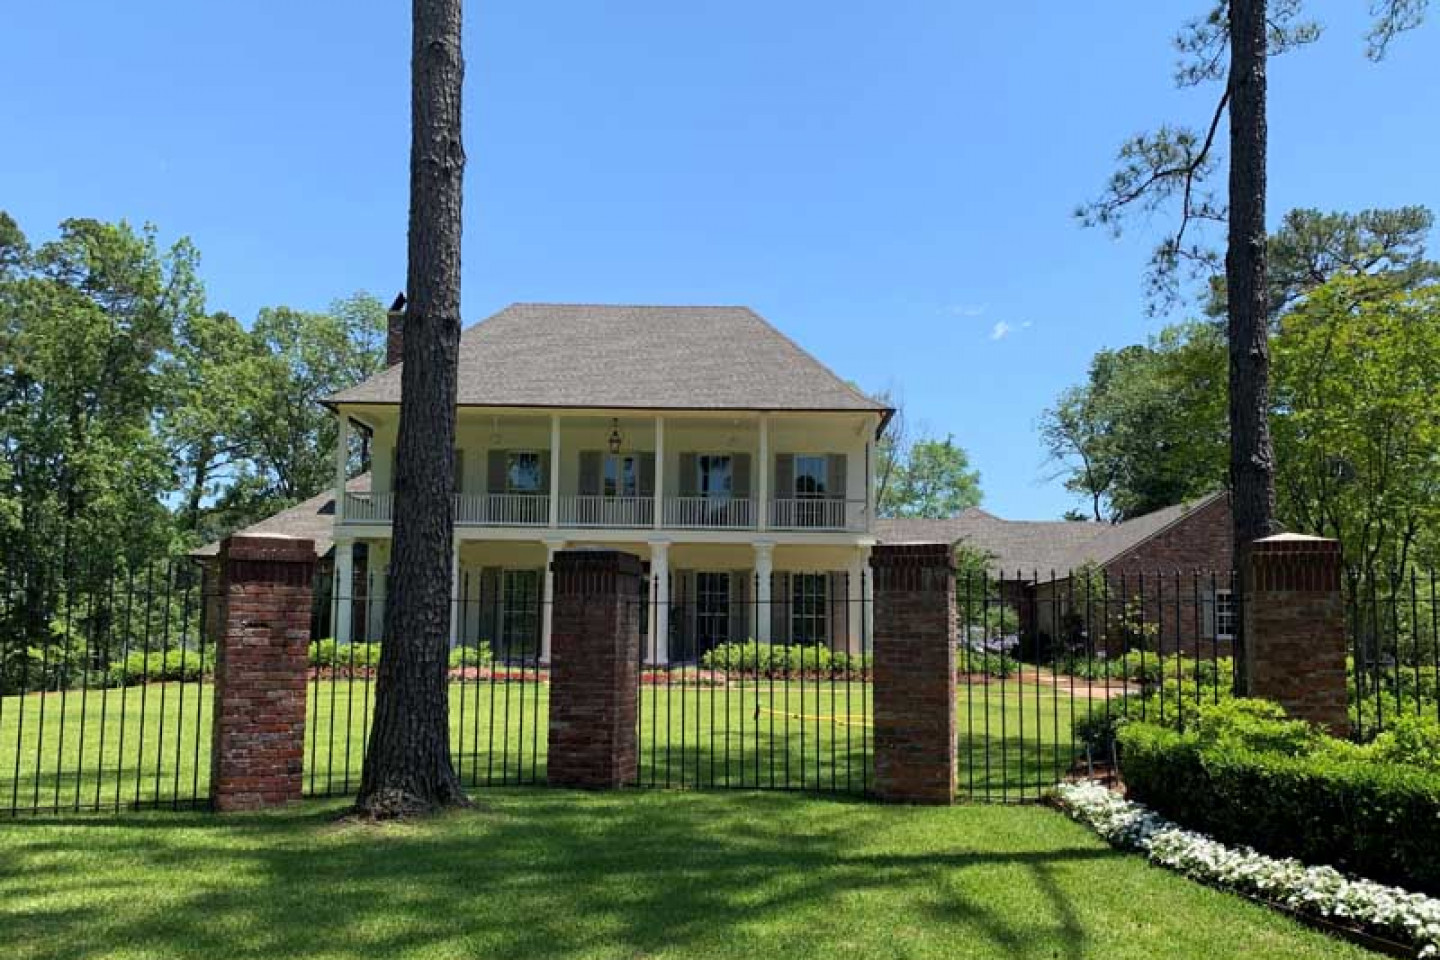 Get Your Roof Repaired Quickly in Keithville, Bossier City or Shreveport, LA